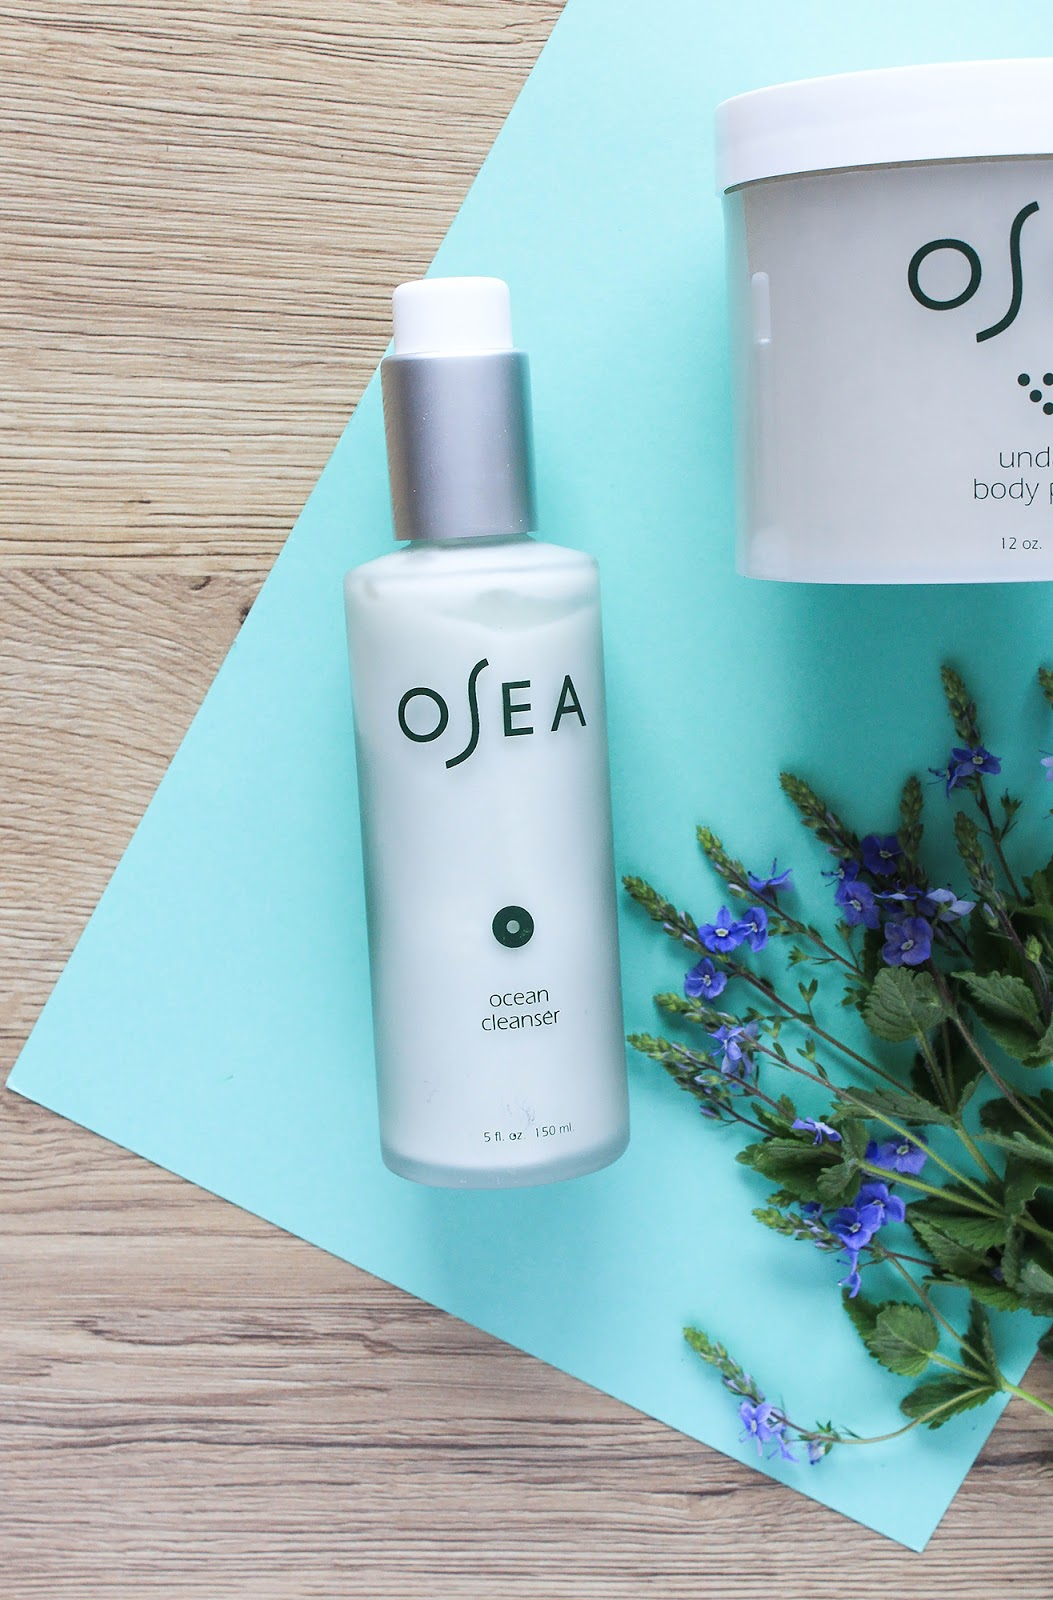 OSEA Ocean Cleanser Beauty Heroes Beauty Discovery May 2018.